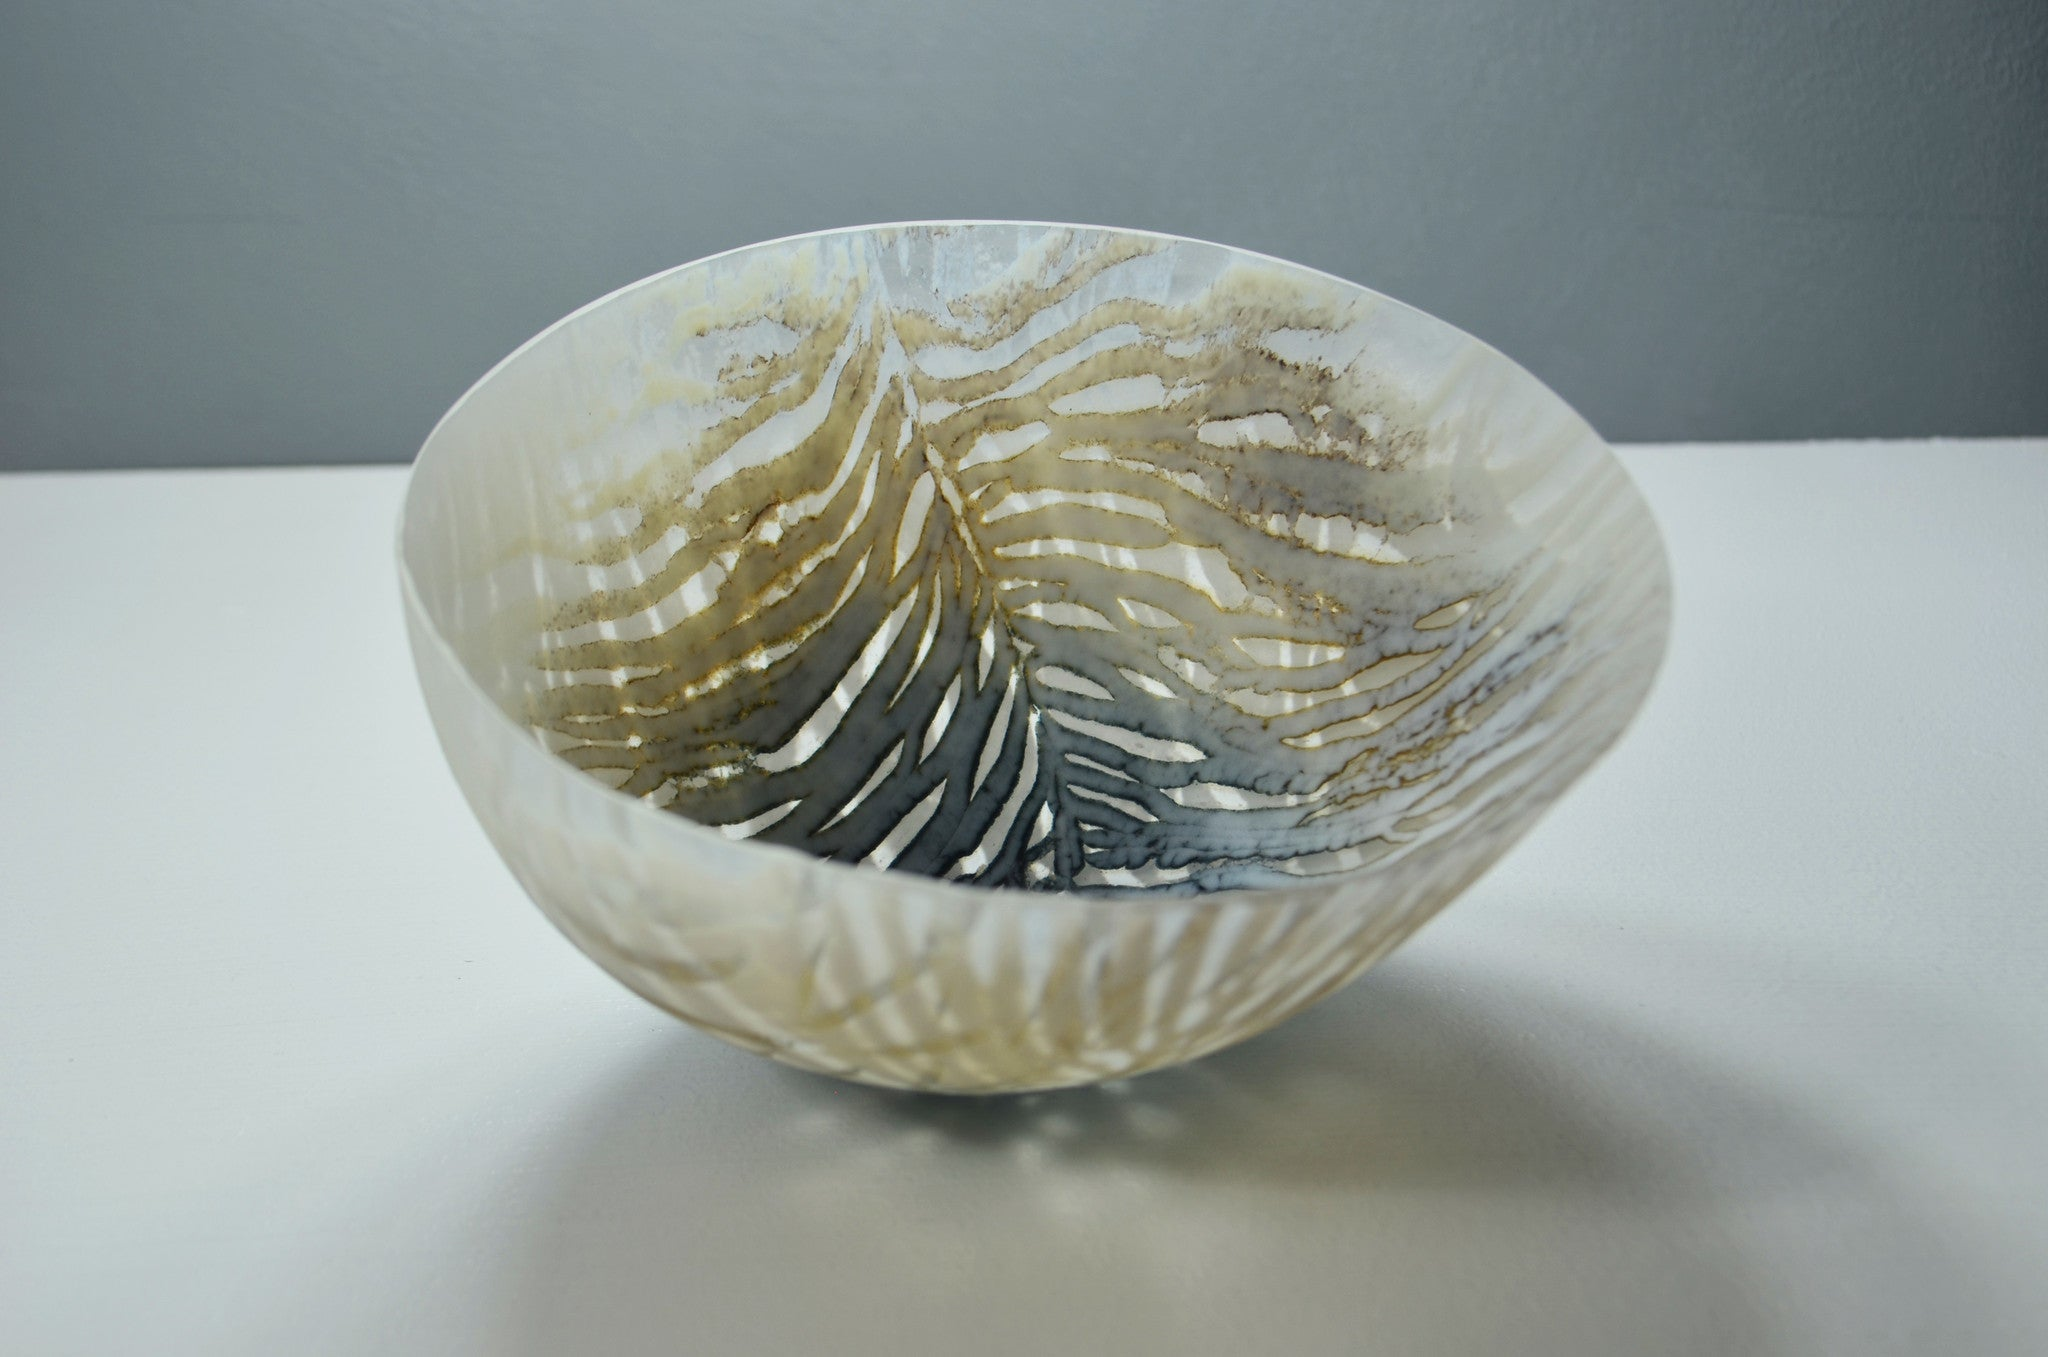 Feather from the Swallows medium glass vessel by Amanda Simmons